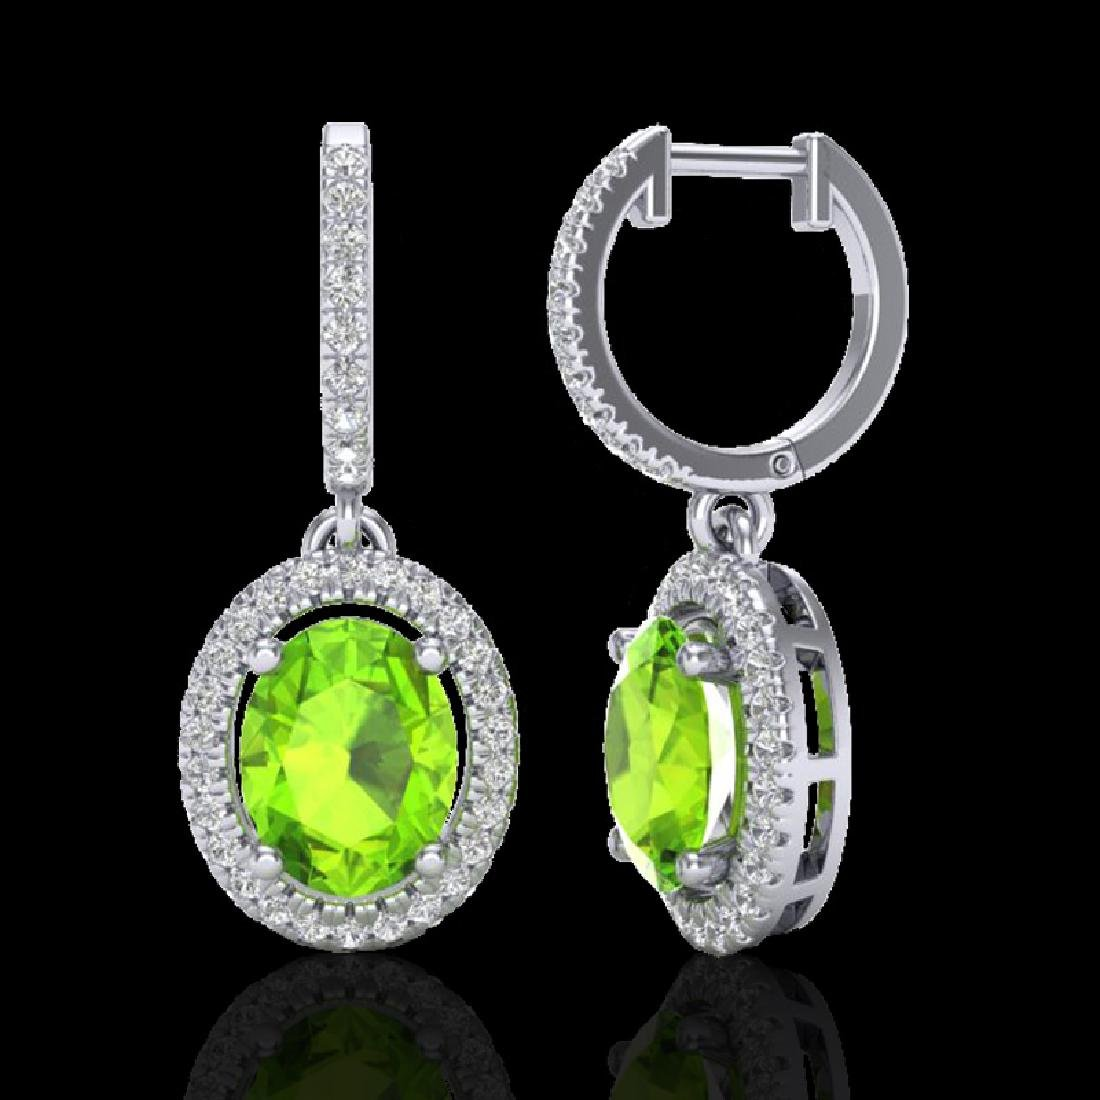 3.75 CTW Peridot & Micro Pave VS/SI Diamond Earrings - 2